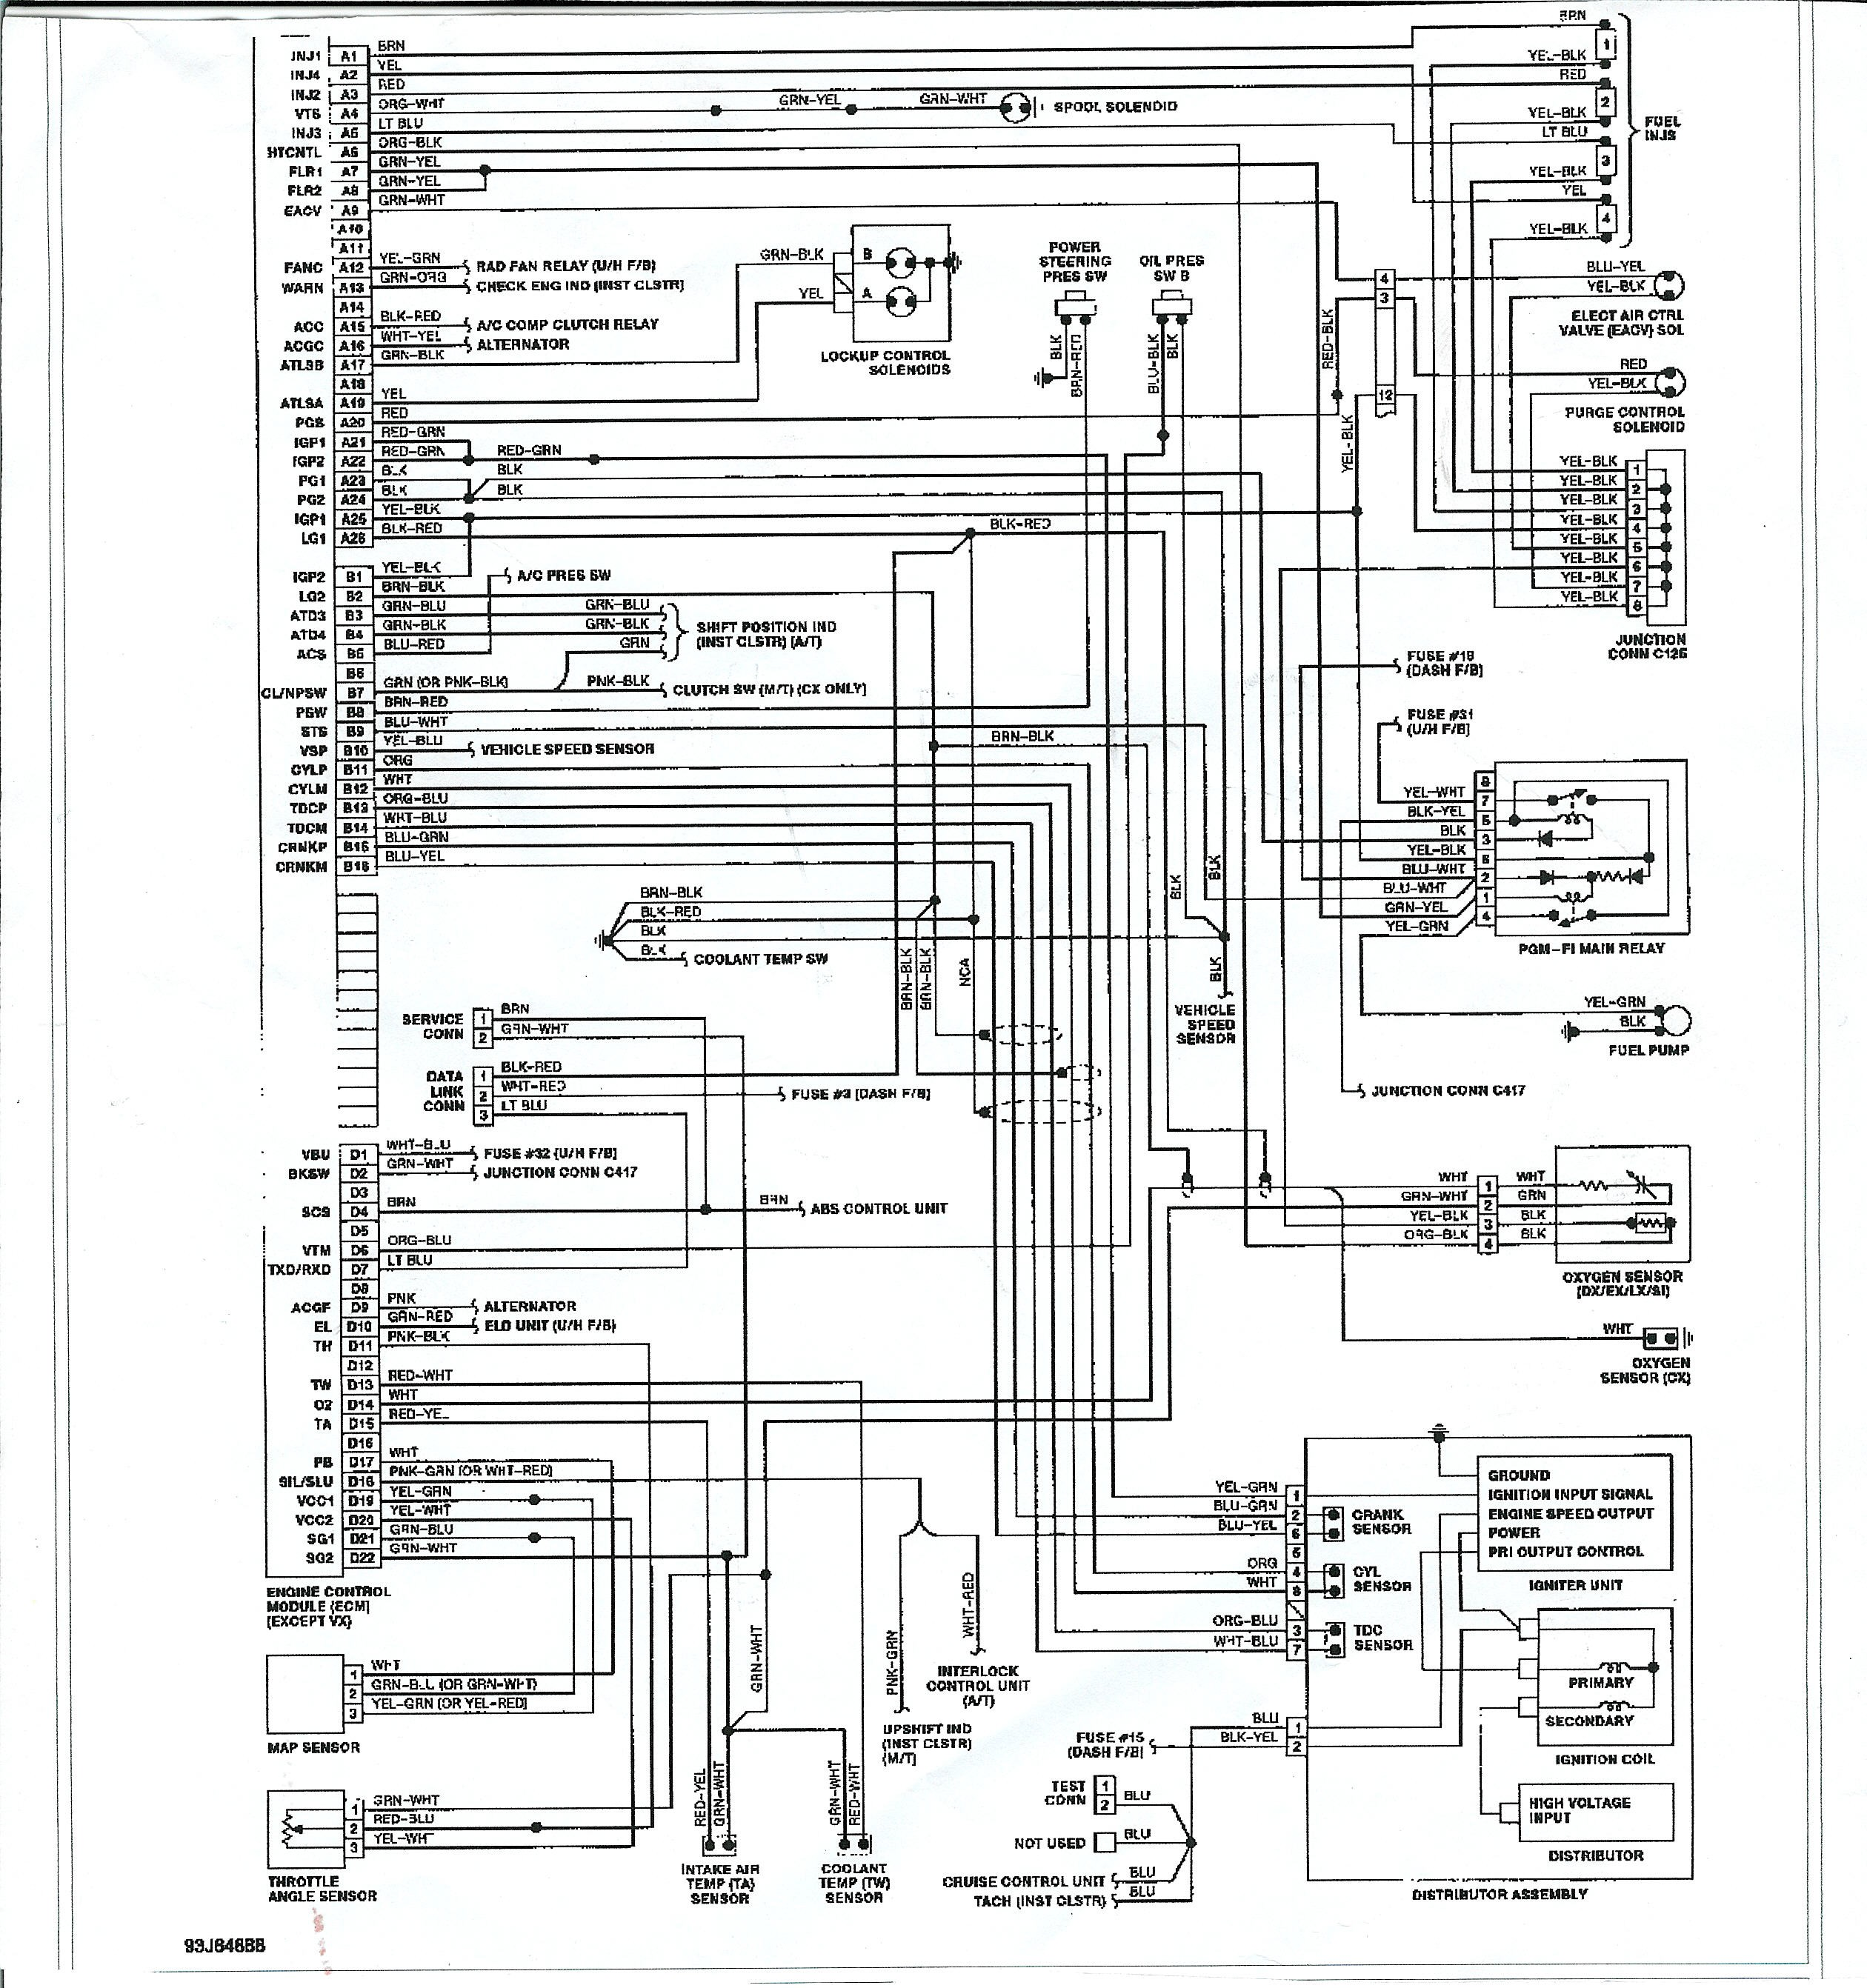 1998 Honda Civic Engine Diagram Vw Transporter Wiring Diagram 95 Honda Civic Transmission Diagram Of 1998 Honda Civic Engine Diagram